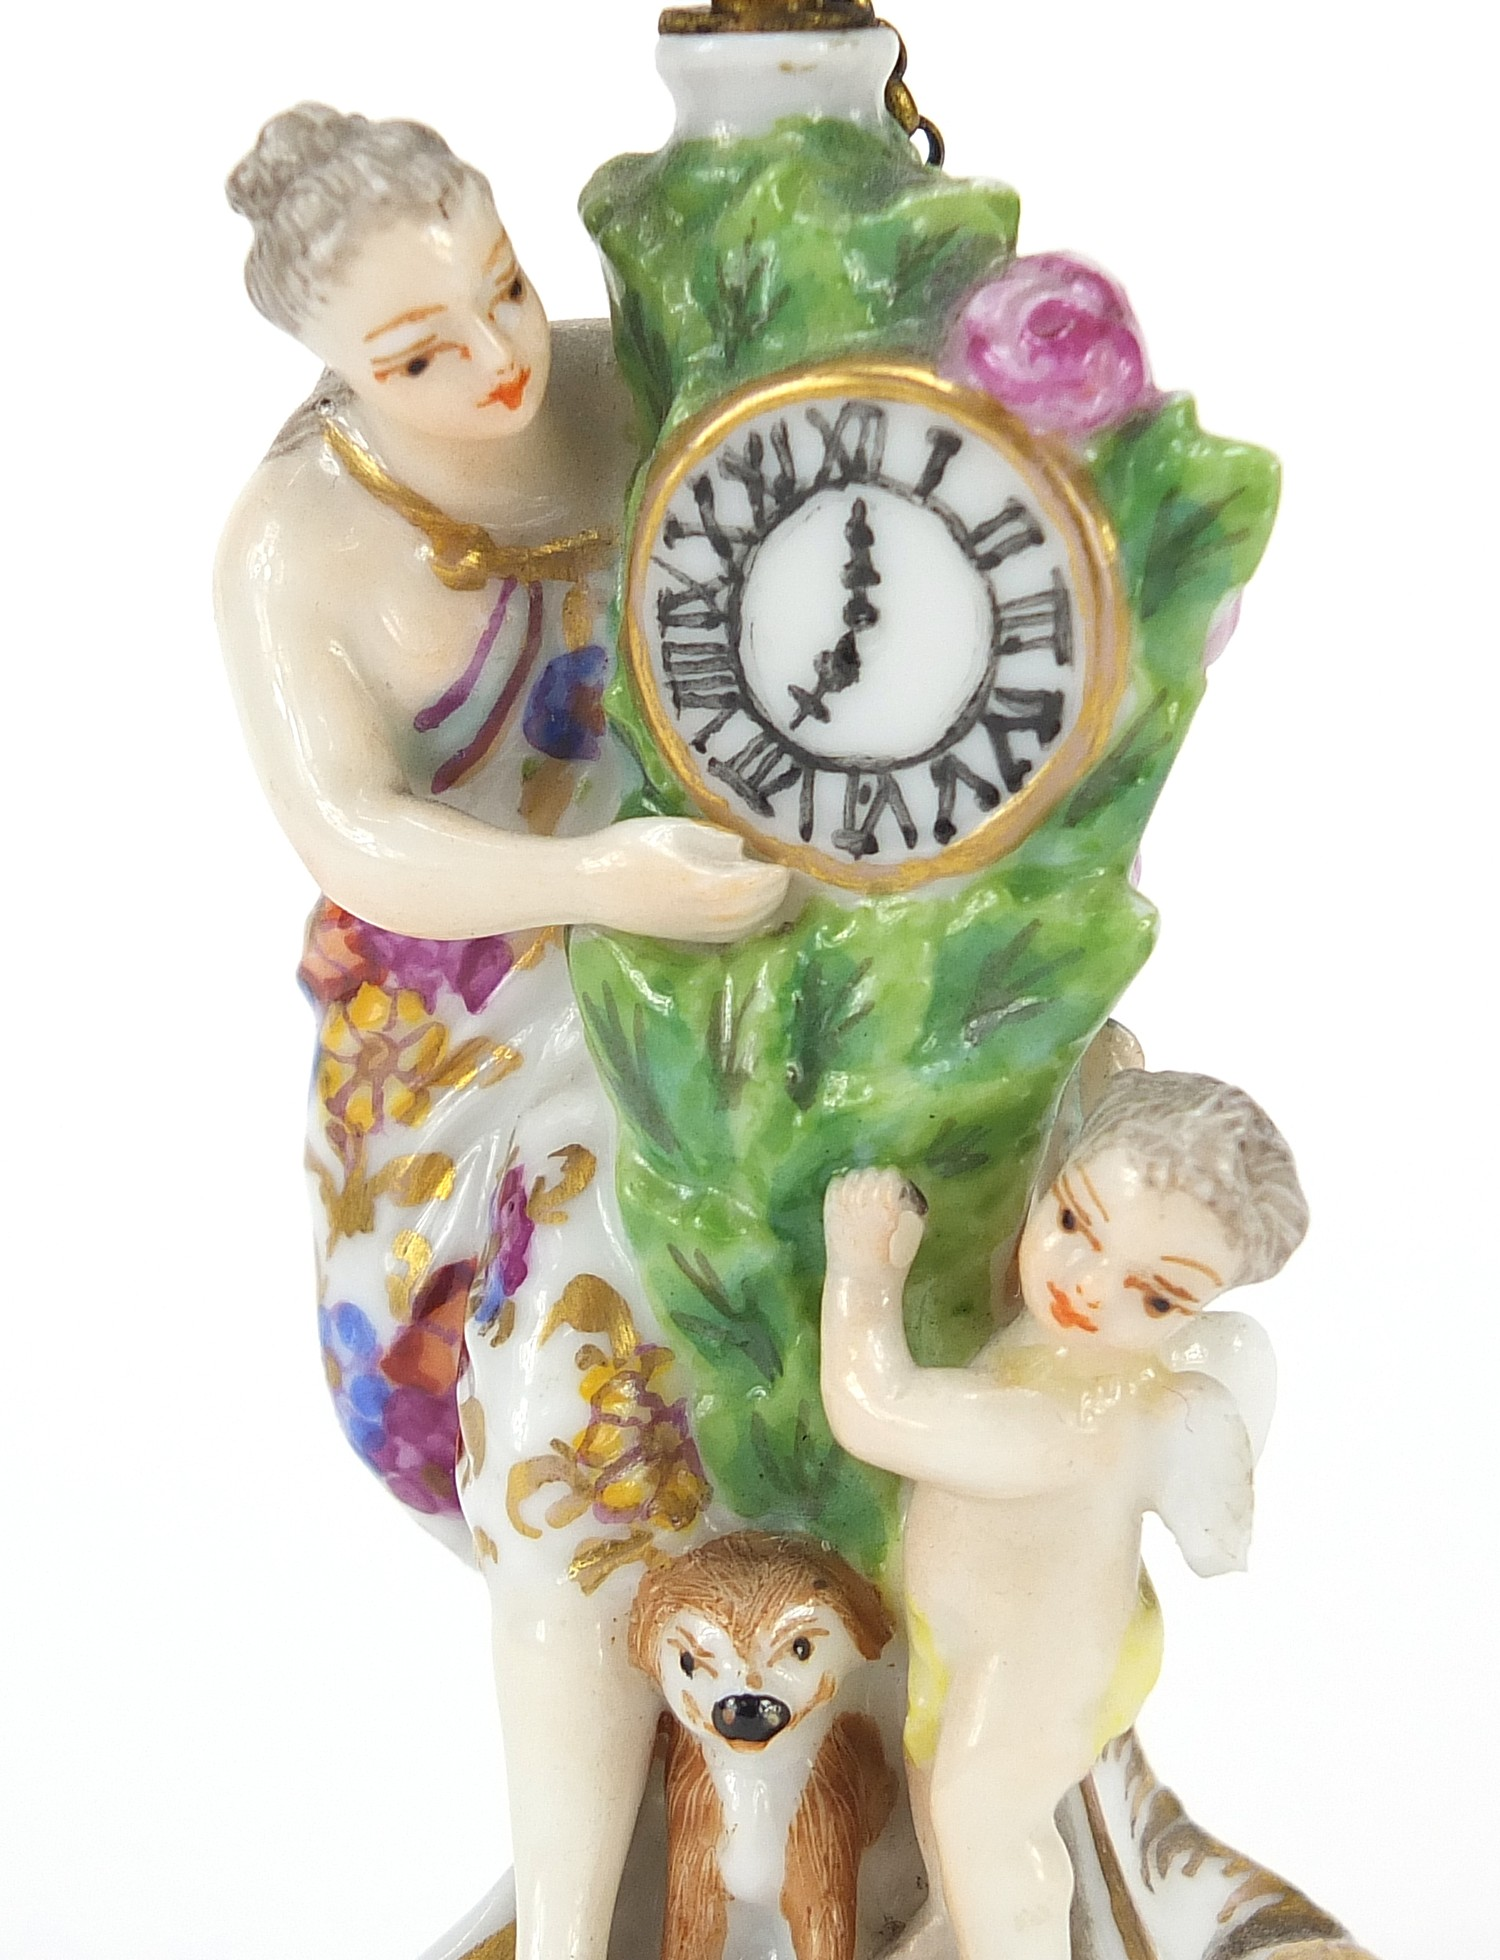 Antique Chelsea style figural scent bottle with bird stopper, 8.5cm high : For Further Condition - Image 2 of 4